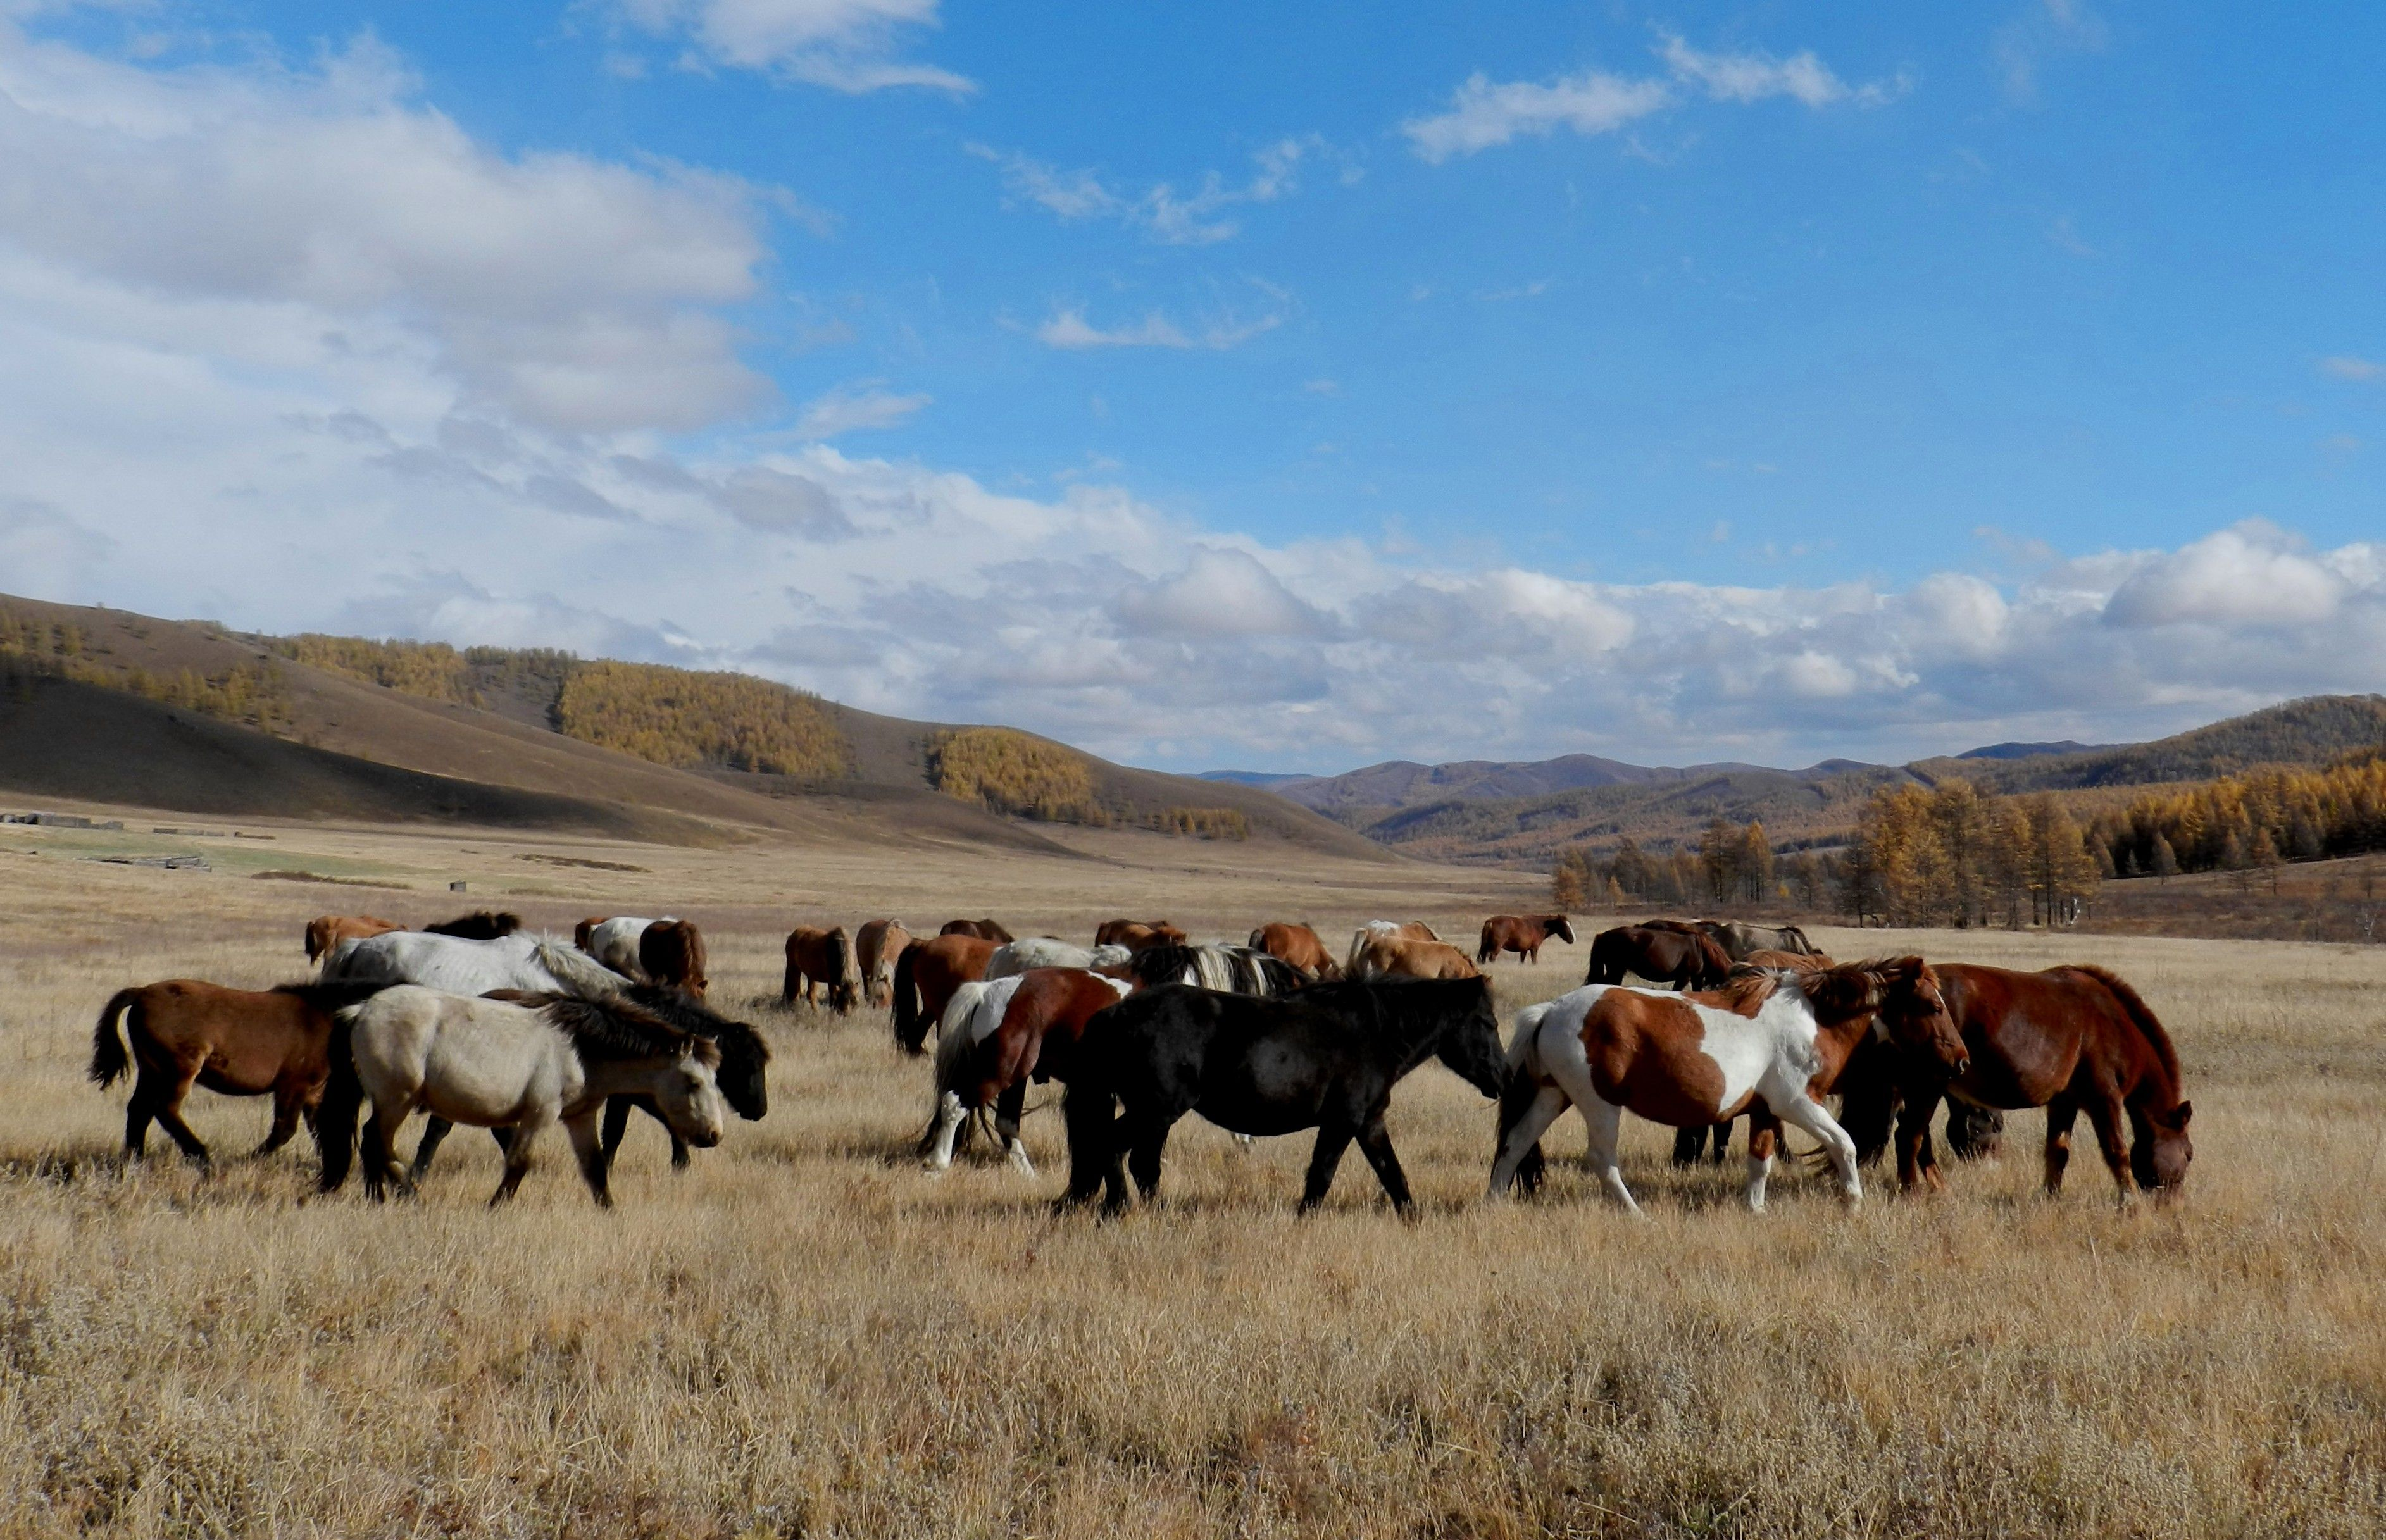 Free roaming herd of Mongolian horses grazing in autumn, gaining strength for the harsh winter. On a horse riding tour with Stone Horse Expeditions, encounters with herds of horses are common and a great sight. www.stonehorsemongolia.com